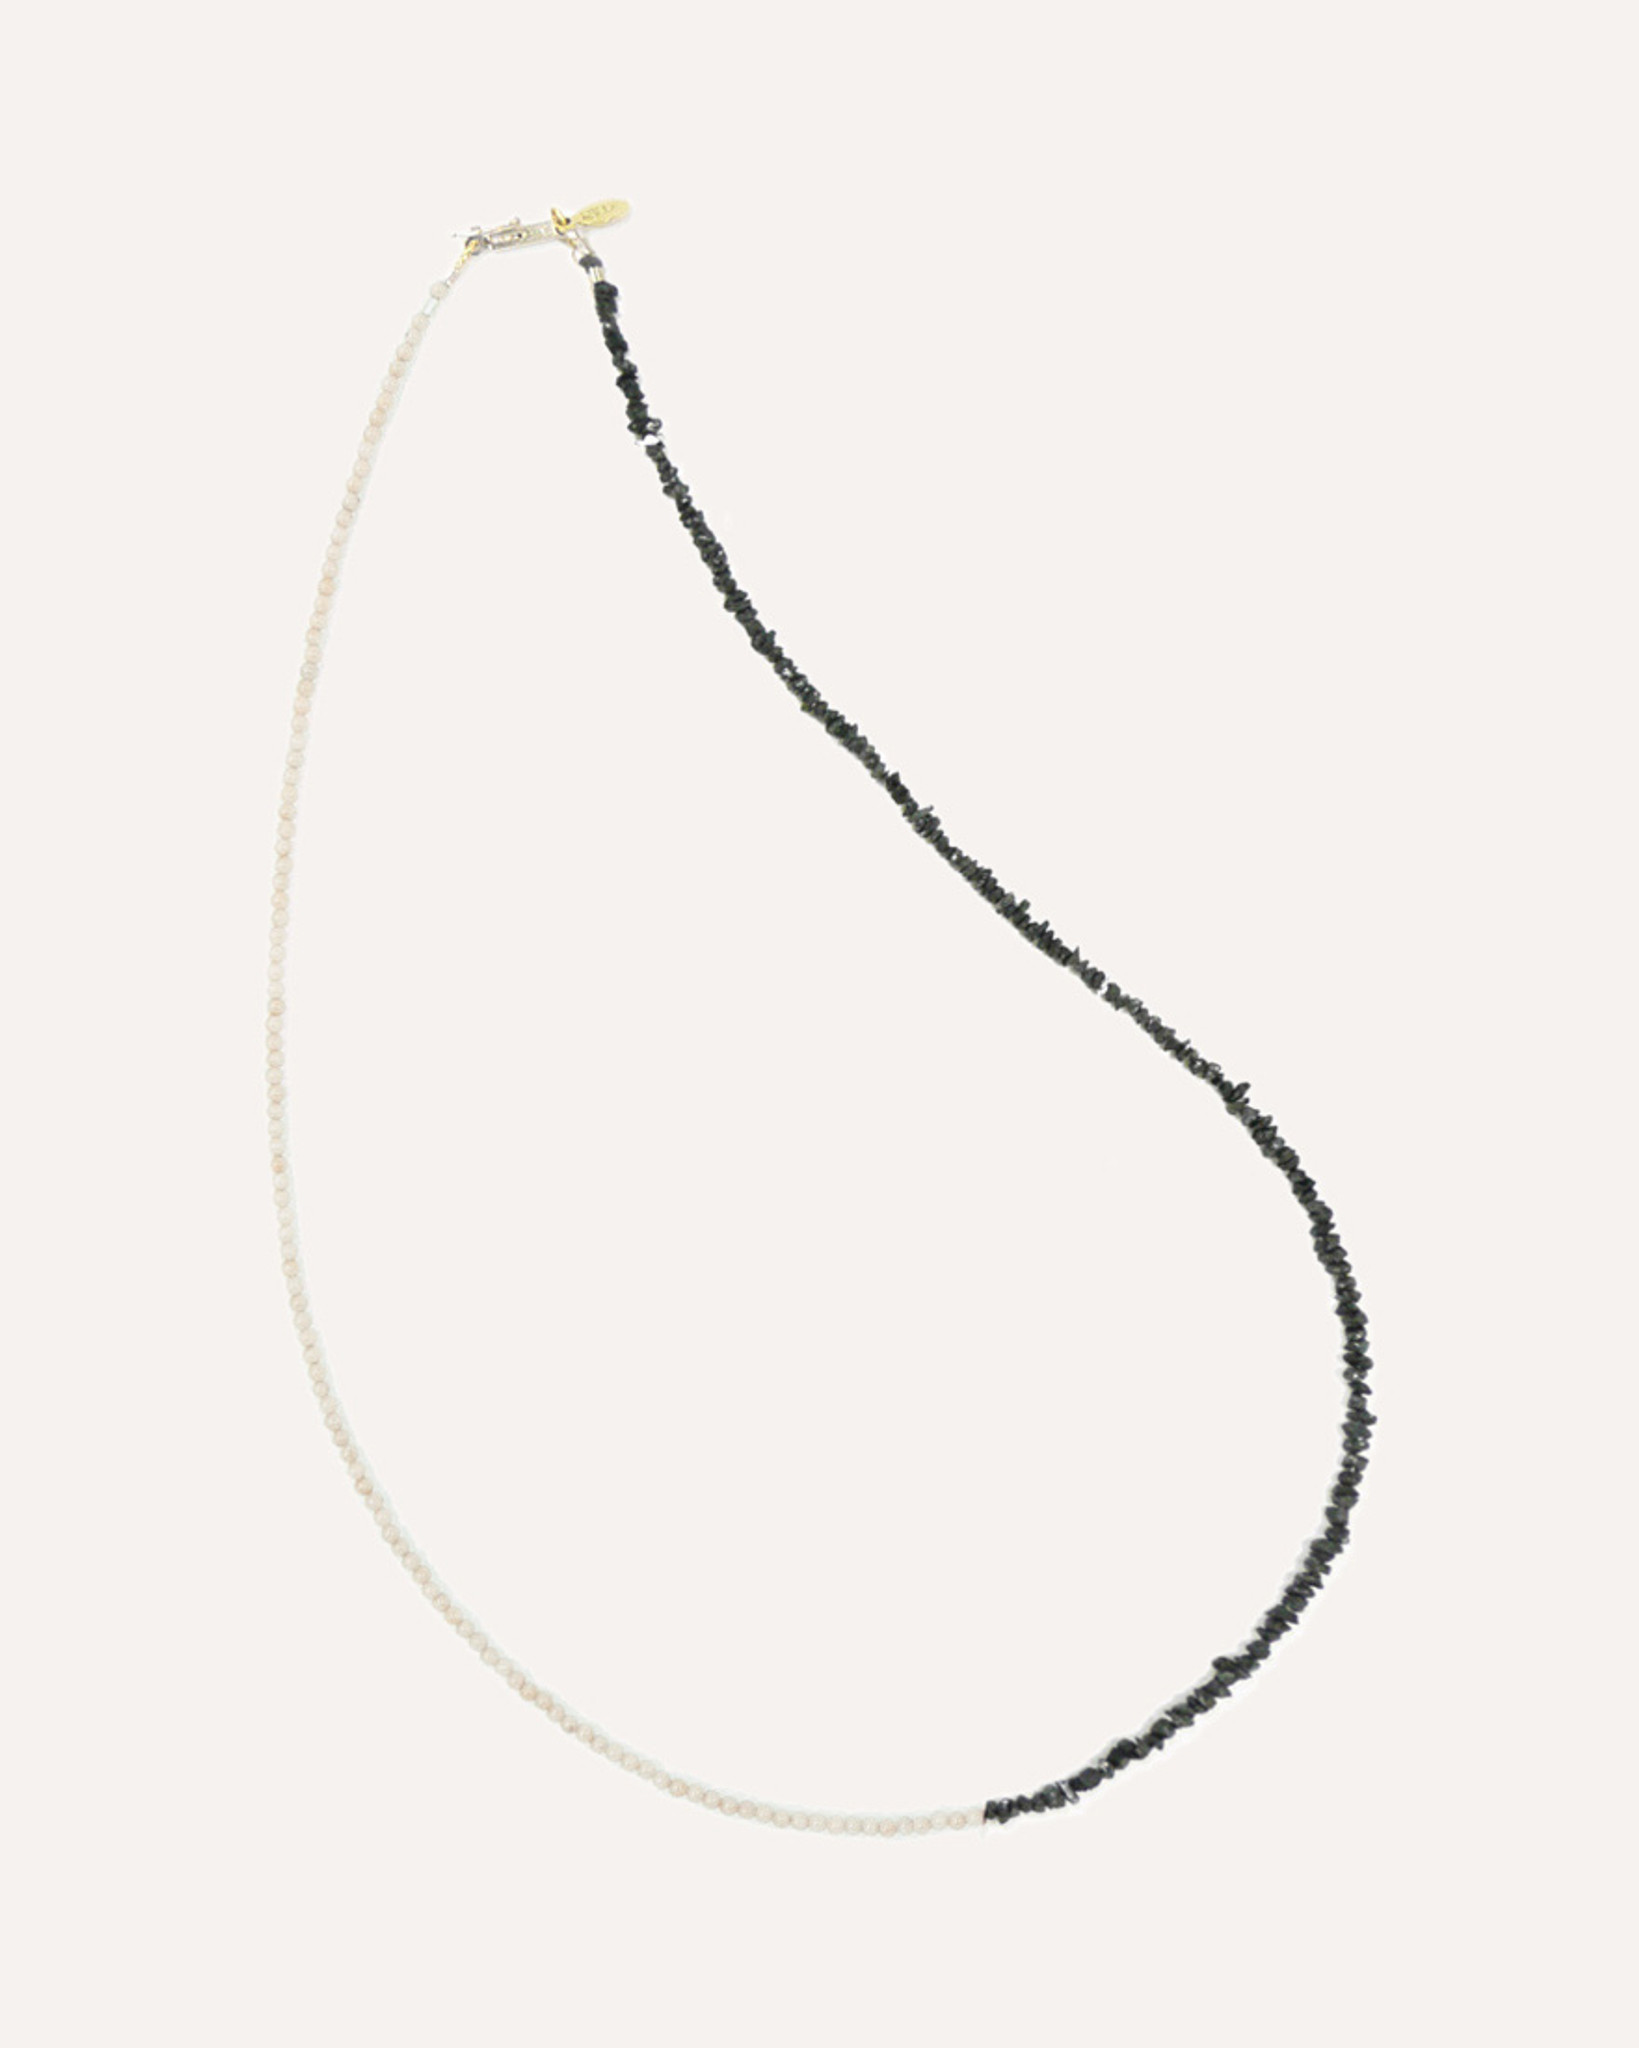 Pearl and Rough Black Diamond Bead Delicate Friendship Necklace by Designer Nektar De Stagni